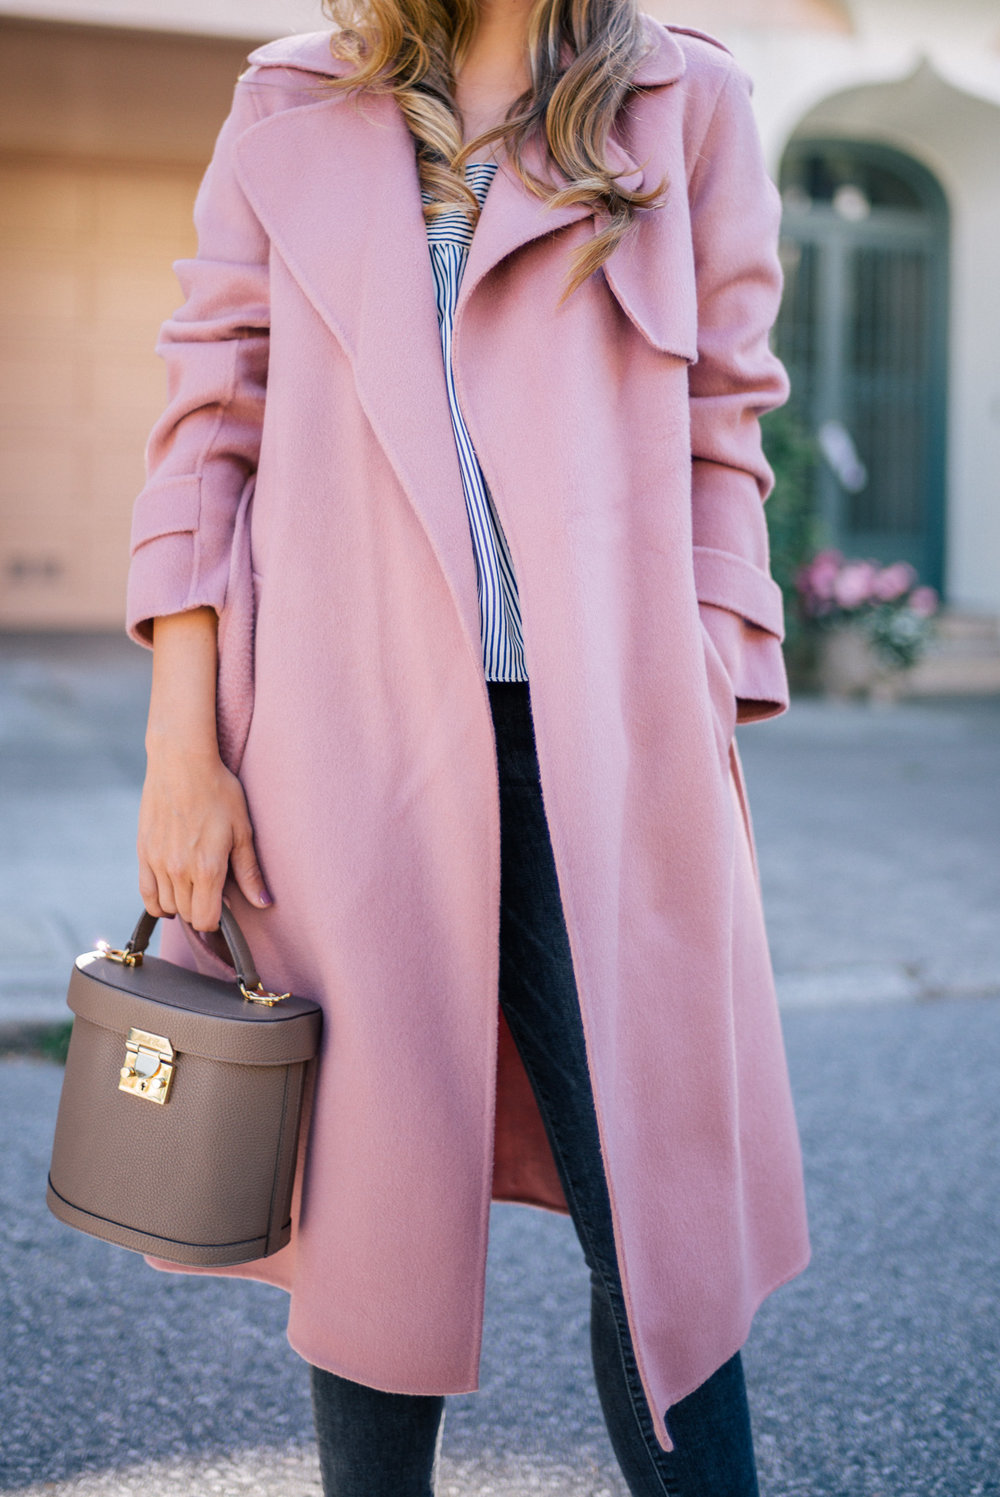 gmg-pink-fall-coat-1009848.jpg